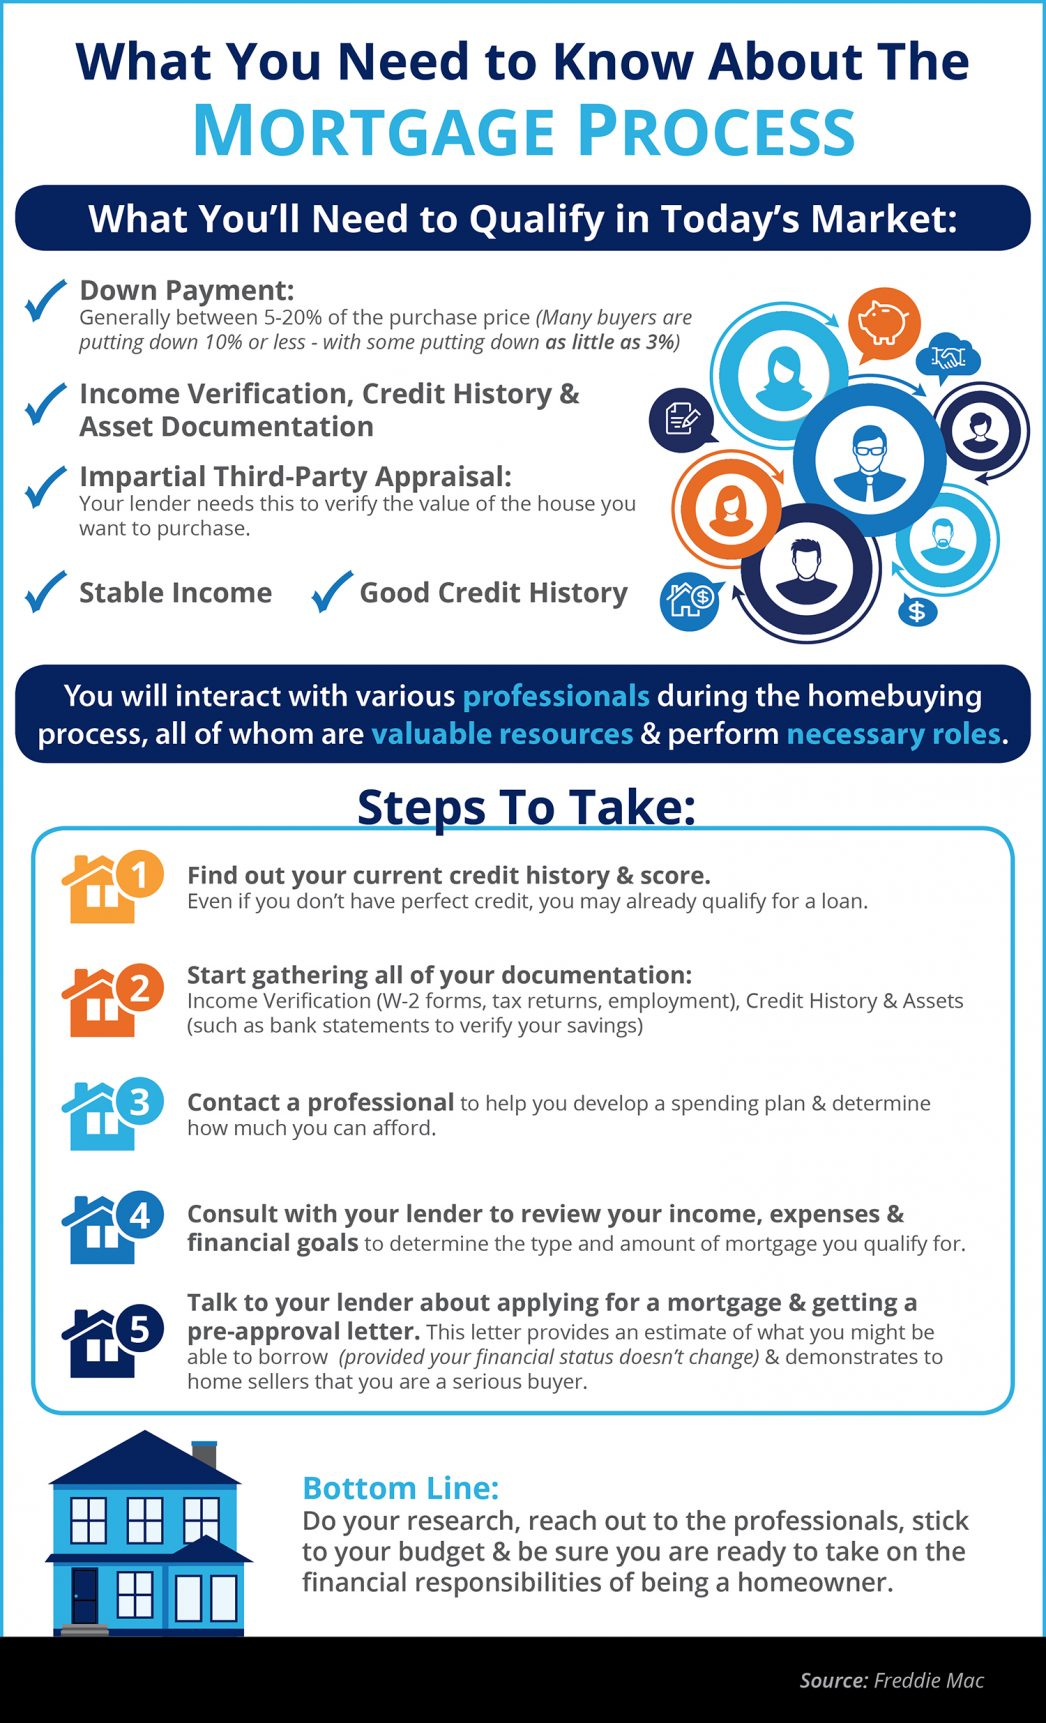 What Will You Need to Qualify for a Mortgage in Today's Market???